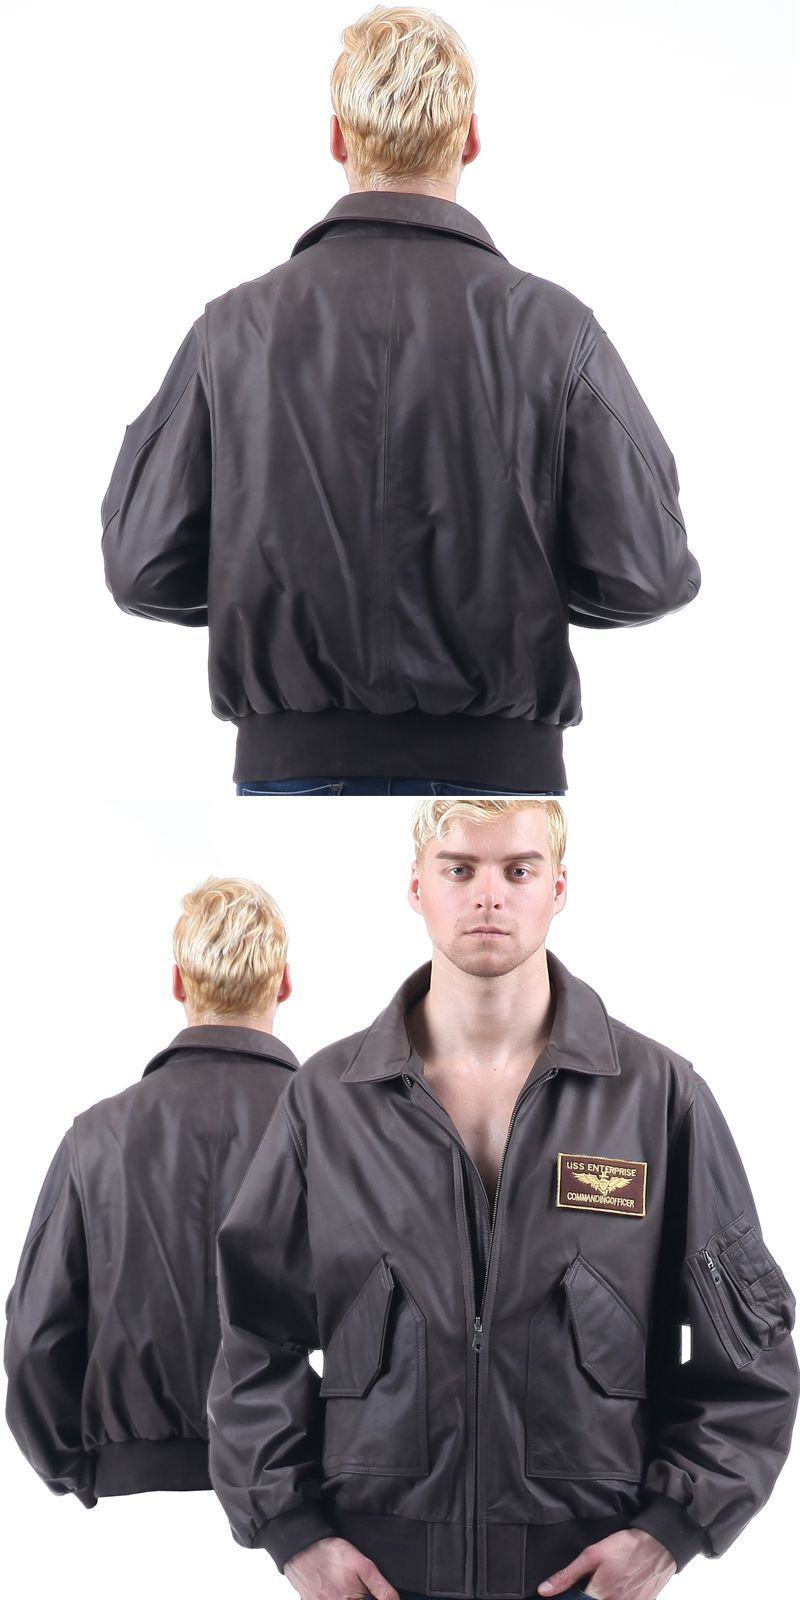 45P AF flight jacket US Army Military Pilot Bomber usaf hip hop motorcycle  of environmental protection leather Men s WOMen s  militarypilot 3a5c71ca3d